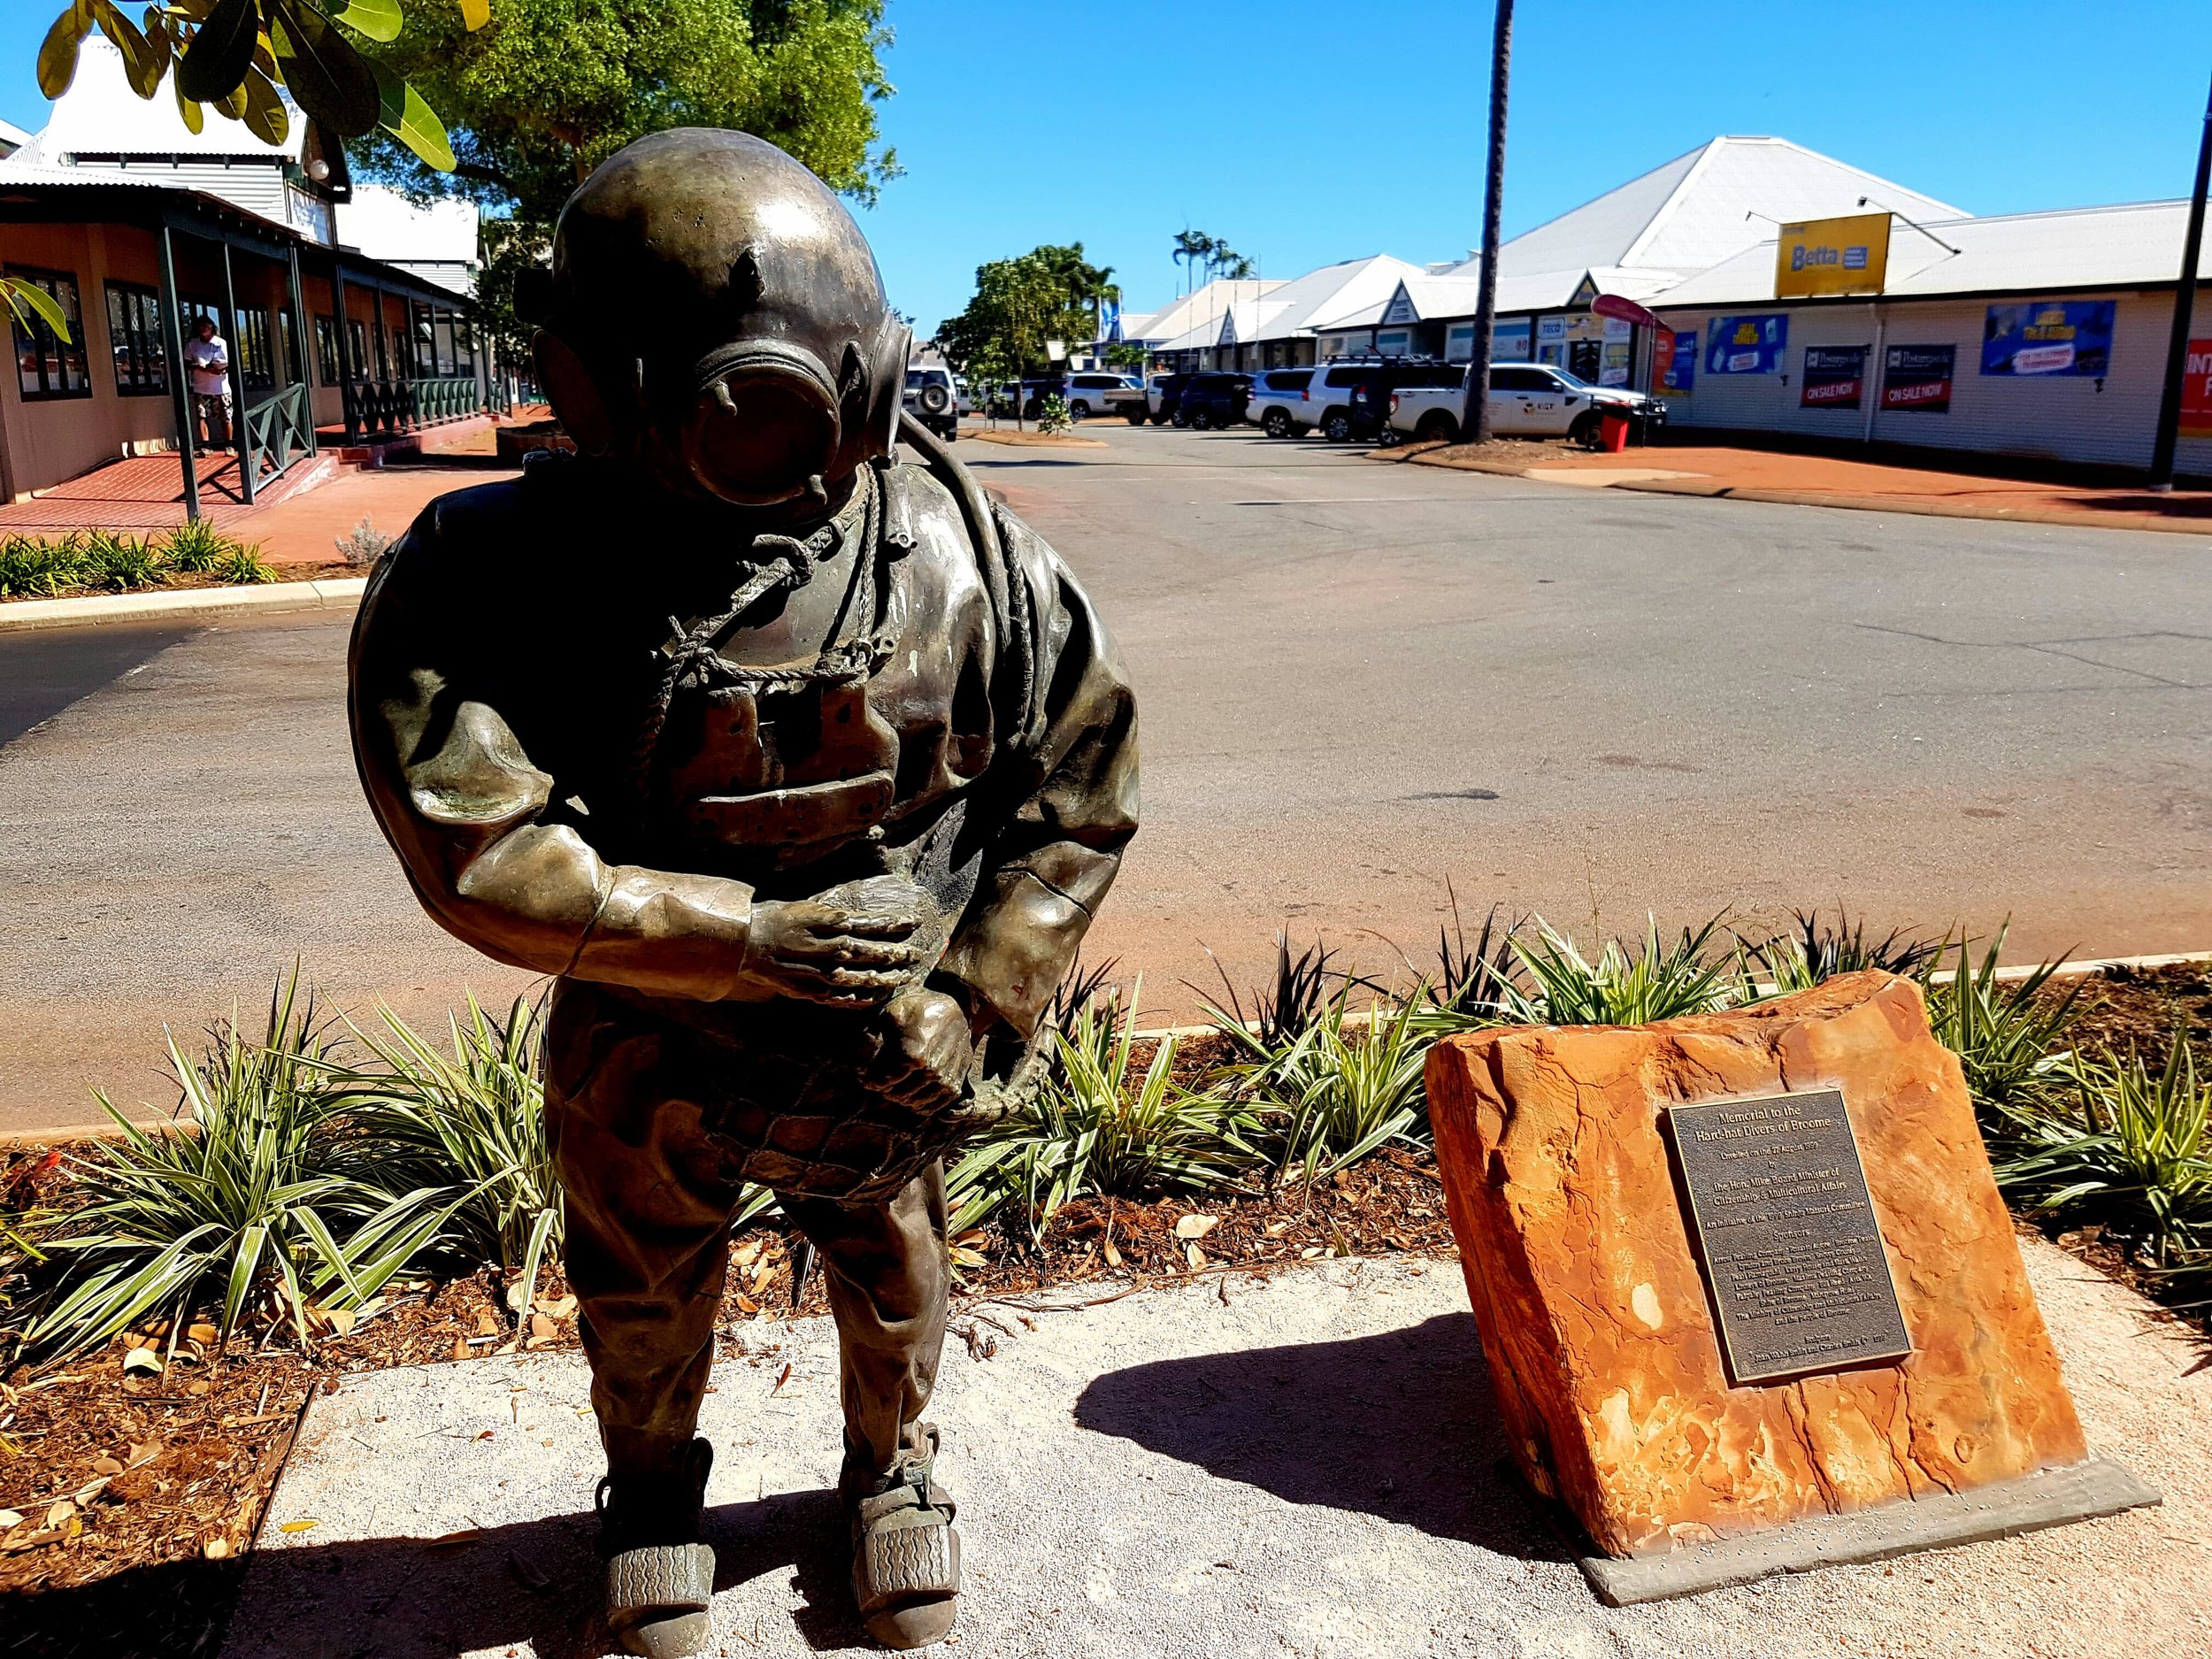 A bronze statue in Broome CBD, a reminder of the town's pearling history